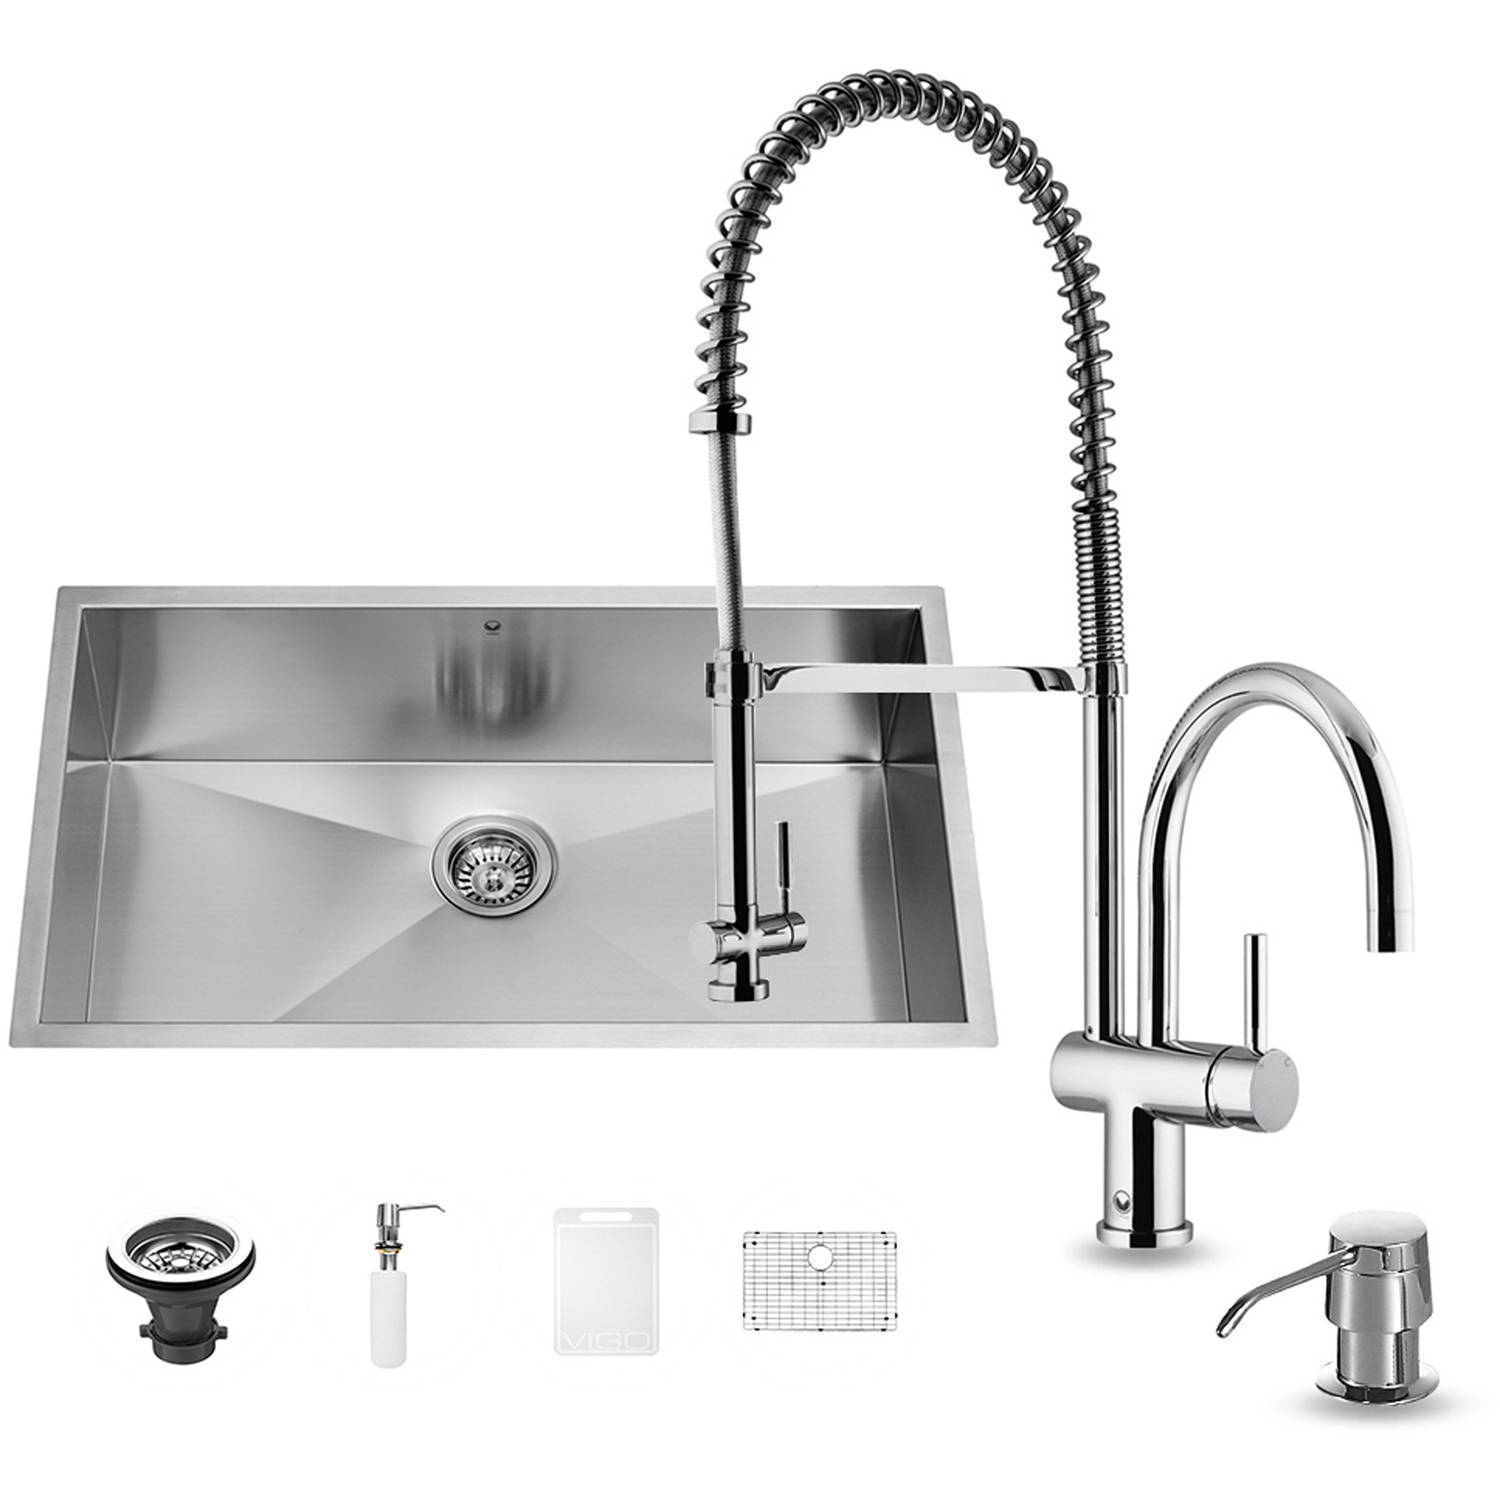 "Vigo All-in-One 30"" Undermount Stainless Steel Kitchen Sink and Chrome Faucet Set"